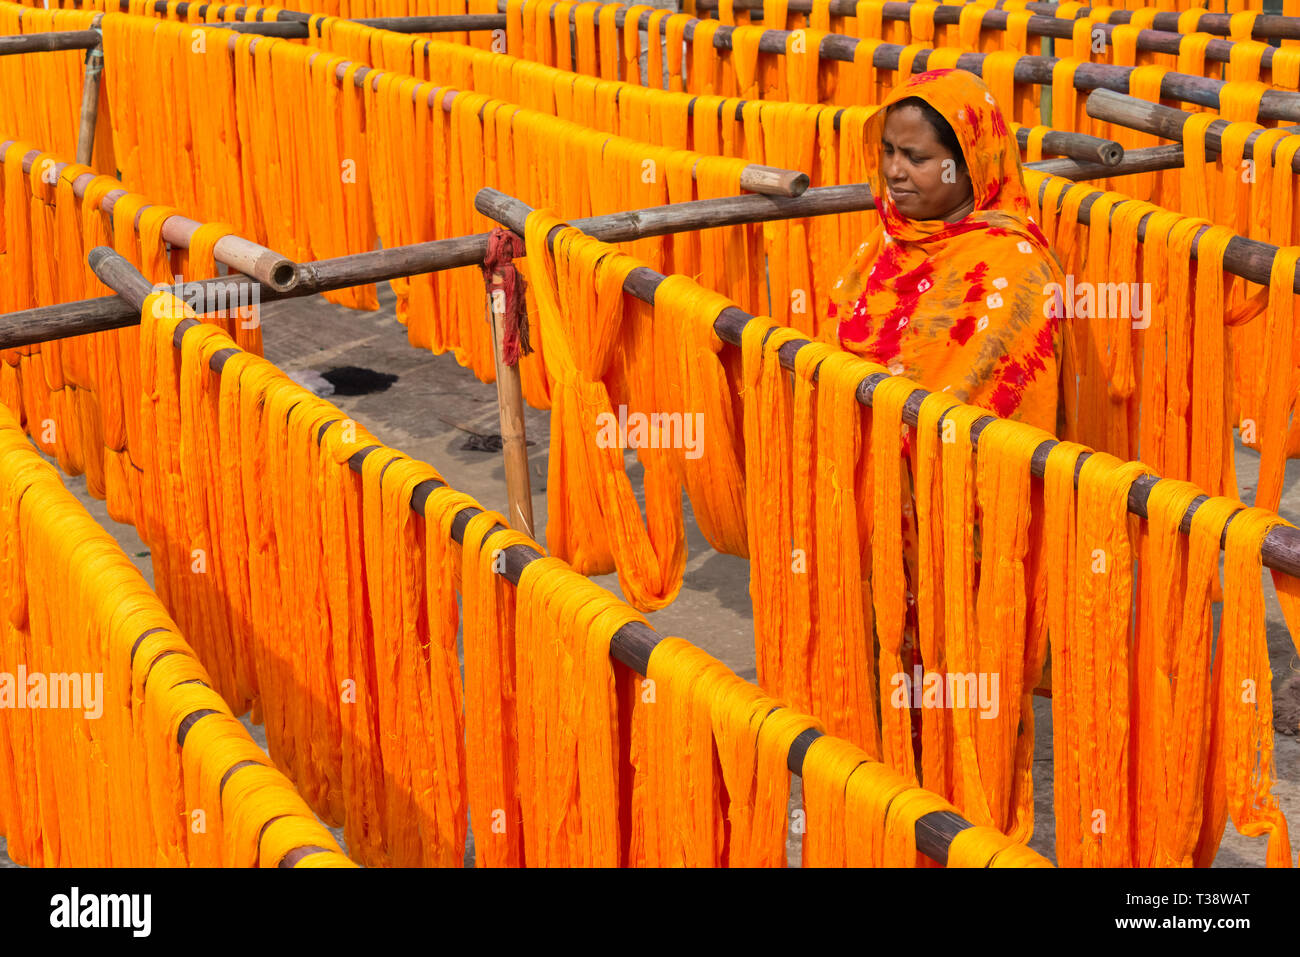 Drying dyed yarn in the traditional weaving village, Tangail district, Dhaka Division, Bangladesh - Stock Image